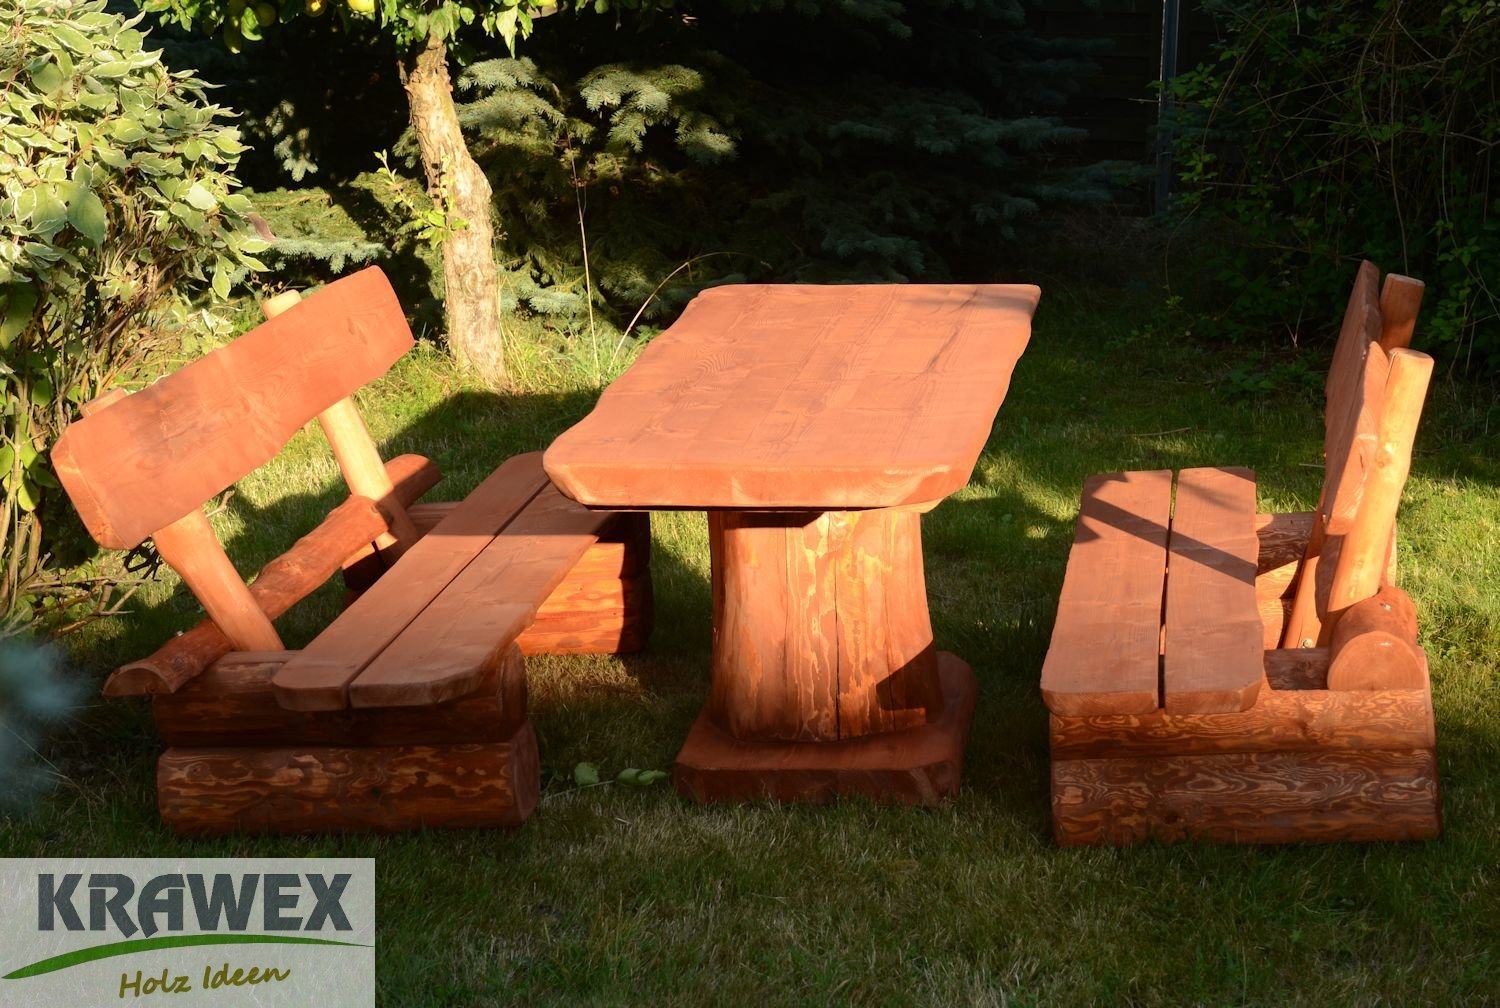 sitzgruppe sitzgarnitur biergarten gartenm bel gartenbank aus holz massiv kaufen. Black Bedroom Furniture Sets. Home Design Ideas